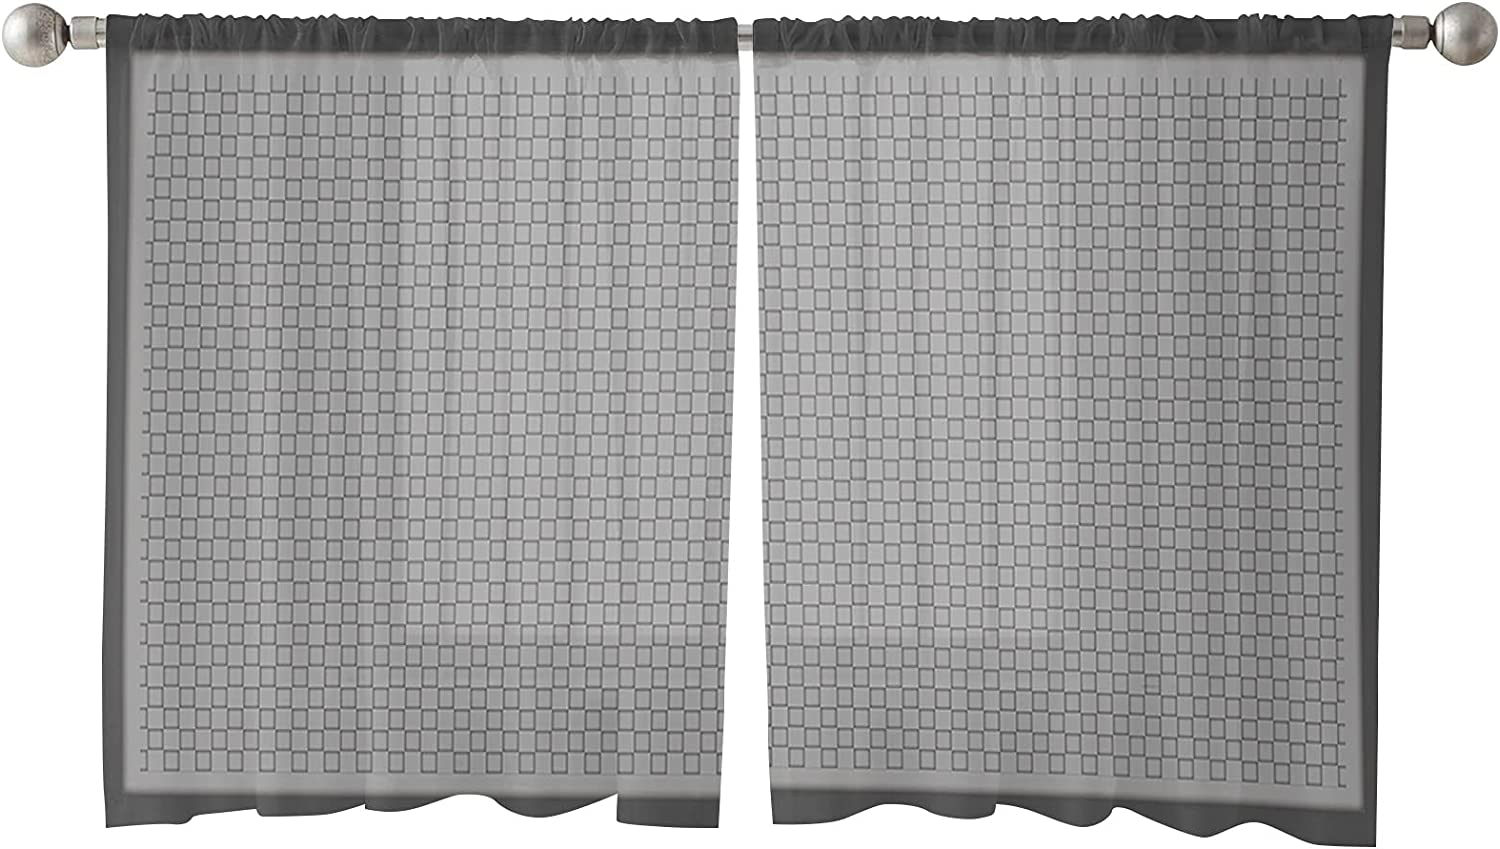 2 PCS Semi-Sheer Curtains 45 Inches Long - Pocket Voile Rod Popular shop is Challenge the lowest price of Japan the lowest price challenge Pane